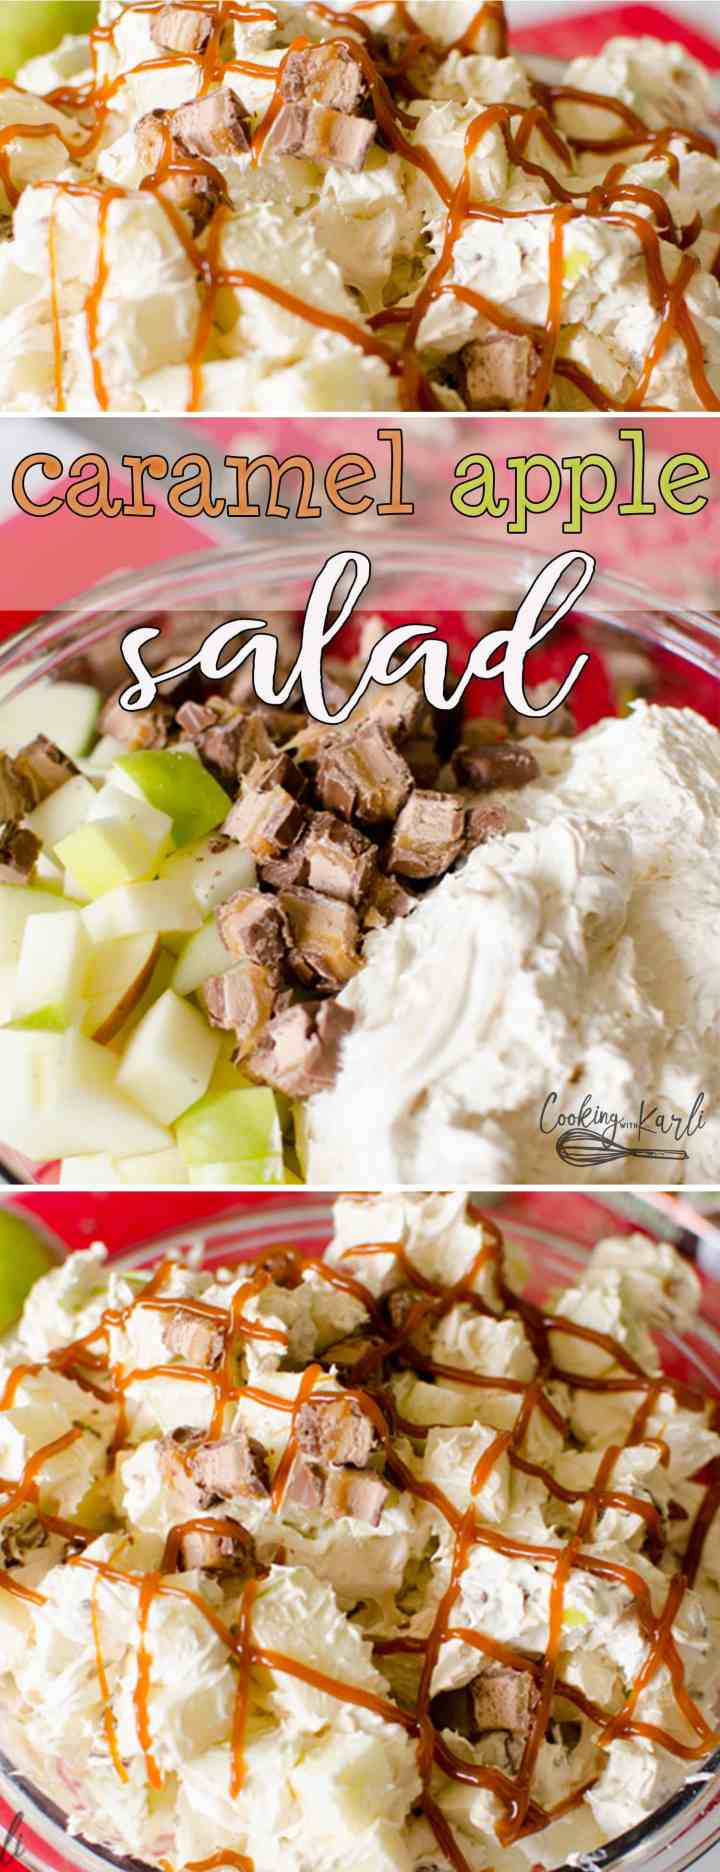 Caramel Apple Salad is a fluffy, creamy, subtly caramel flavored salad that is filled withtart Granny Smith Apples and Milky Way candy bars. The whole salad is drizzled with caramel sauce to finish it off. This classic salad is perfect for potlucks, holidays, family parties, or fall. |Cooking with Karli| #salad #sidedish #caramel #apple #candybar #recipe